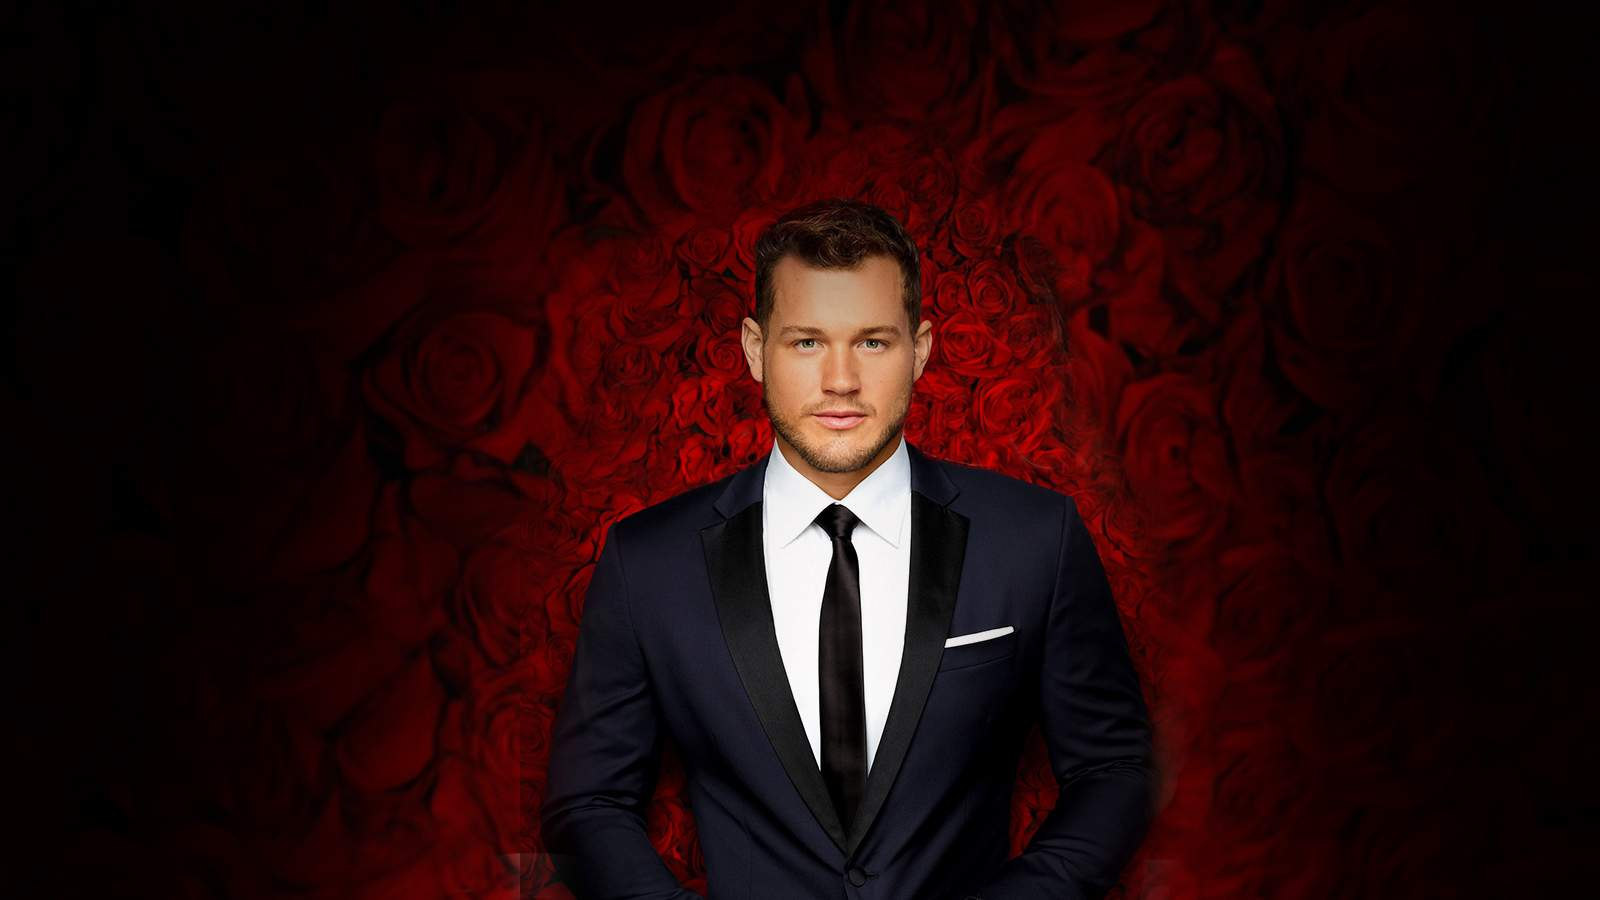 The Bachelor Live On Stage (Rescheduled from 3/27/2020)